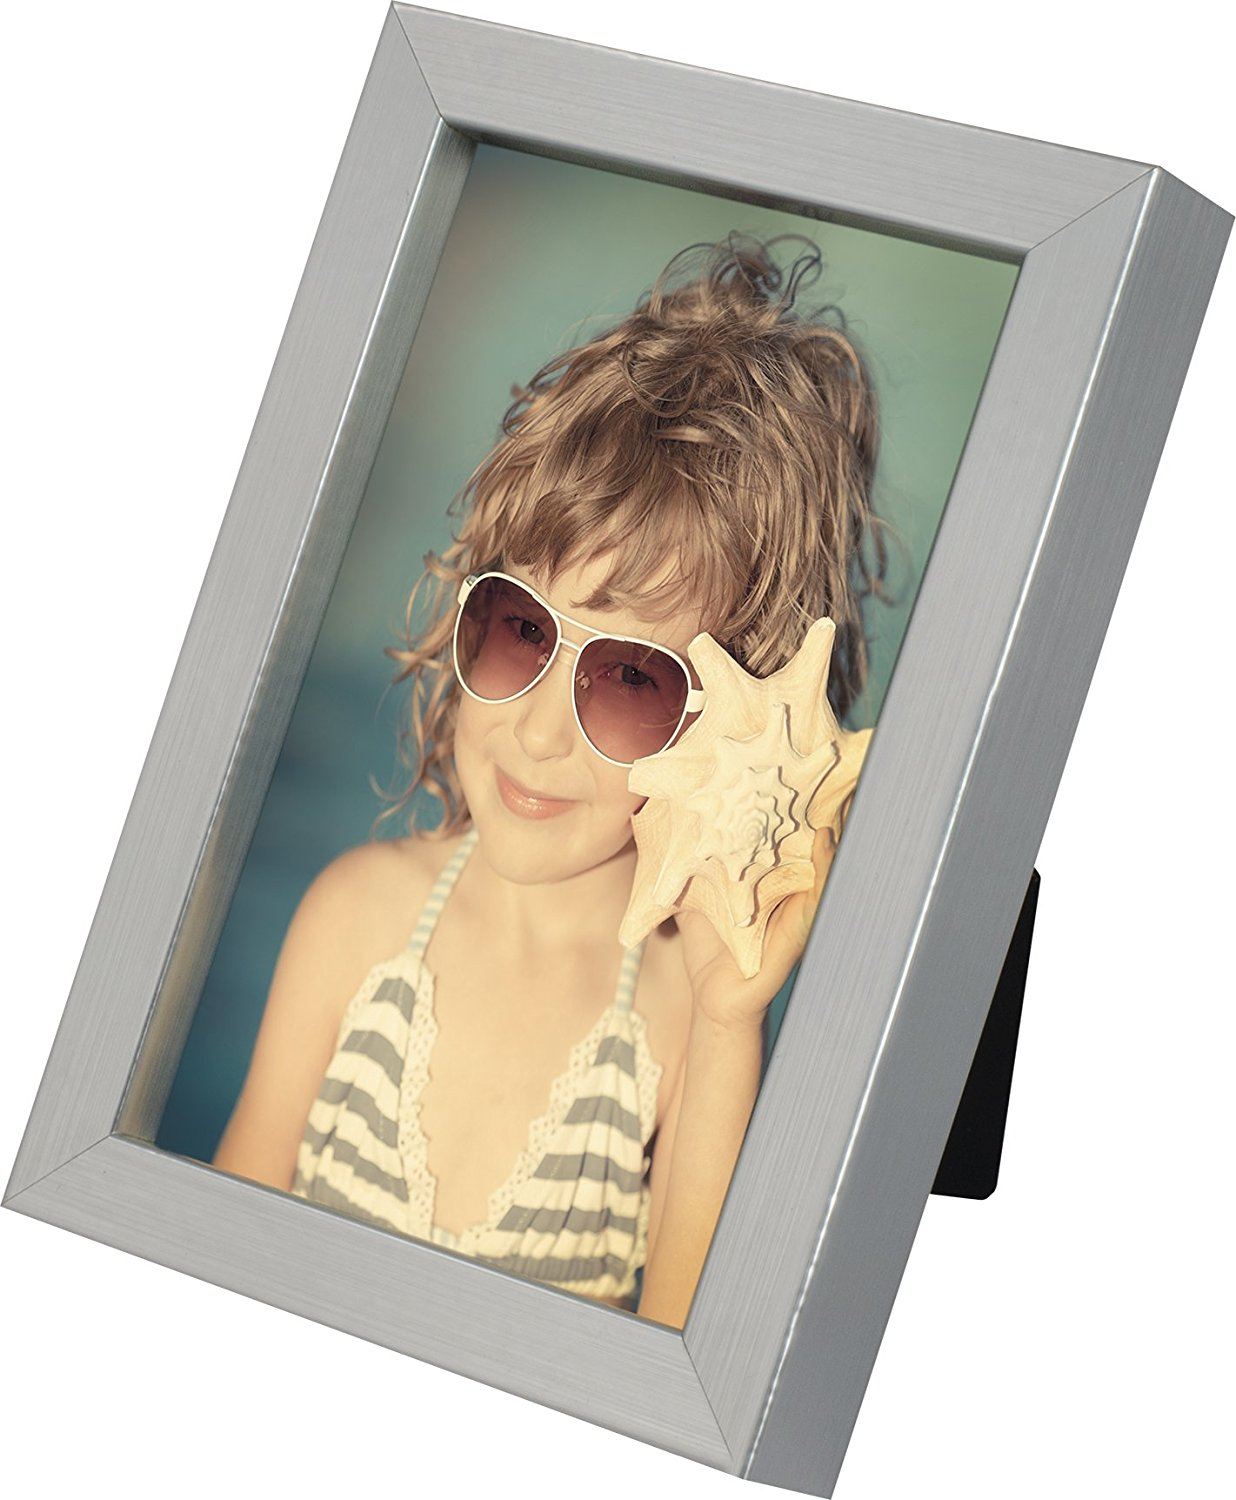 4 x 6-Inch Picture Photo Frame, ALU